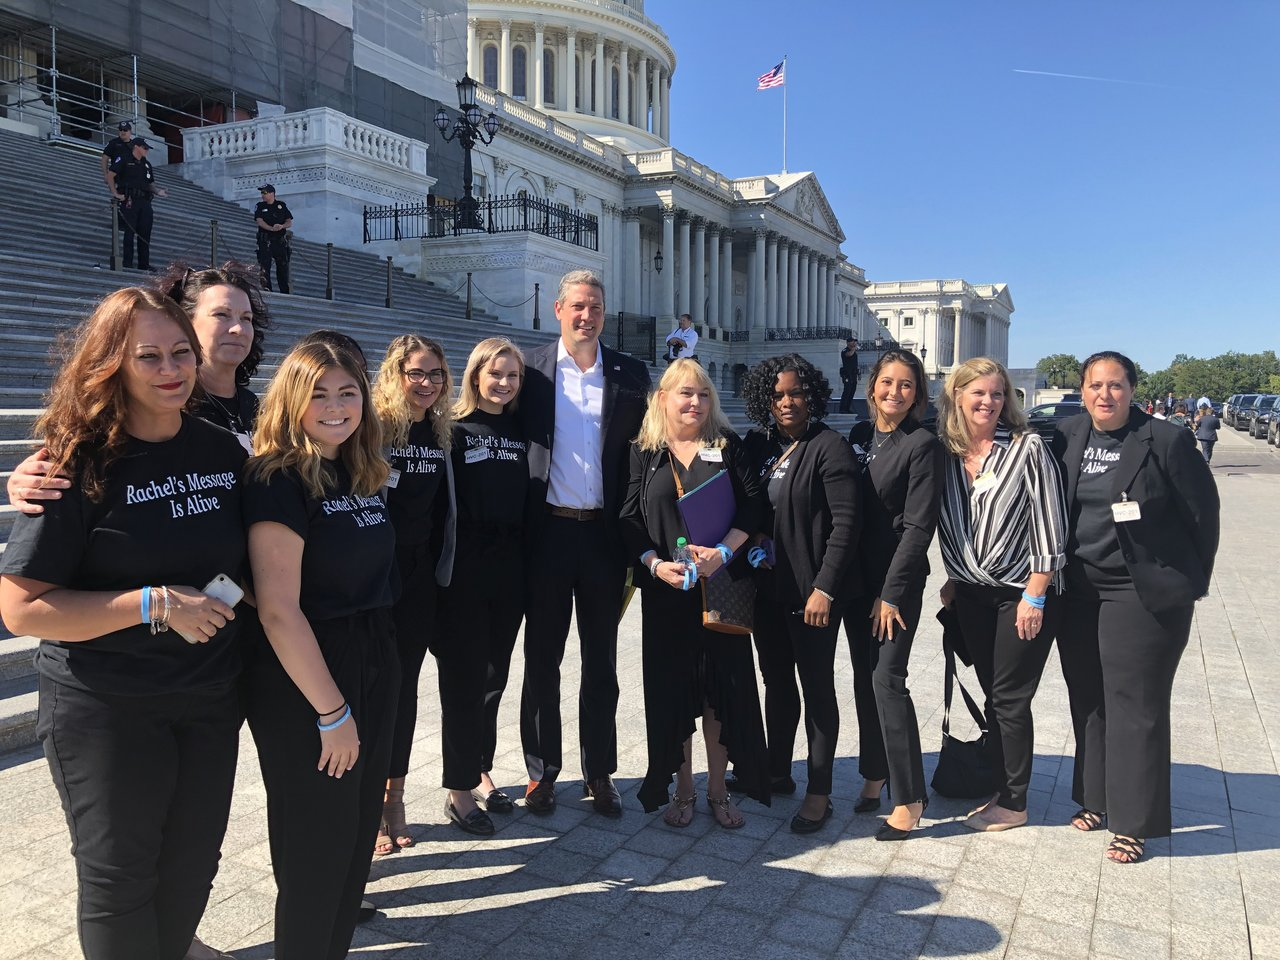 The Rachel's Angels group poses for a photo with Rep. Tim Ryan (D-OH). Ohio University student Katie Bender is third from the right.